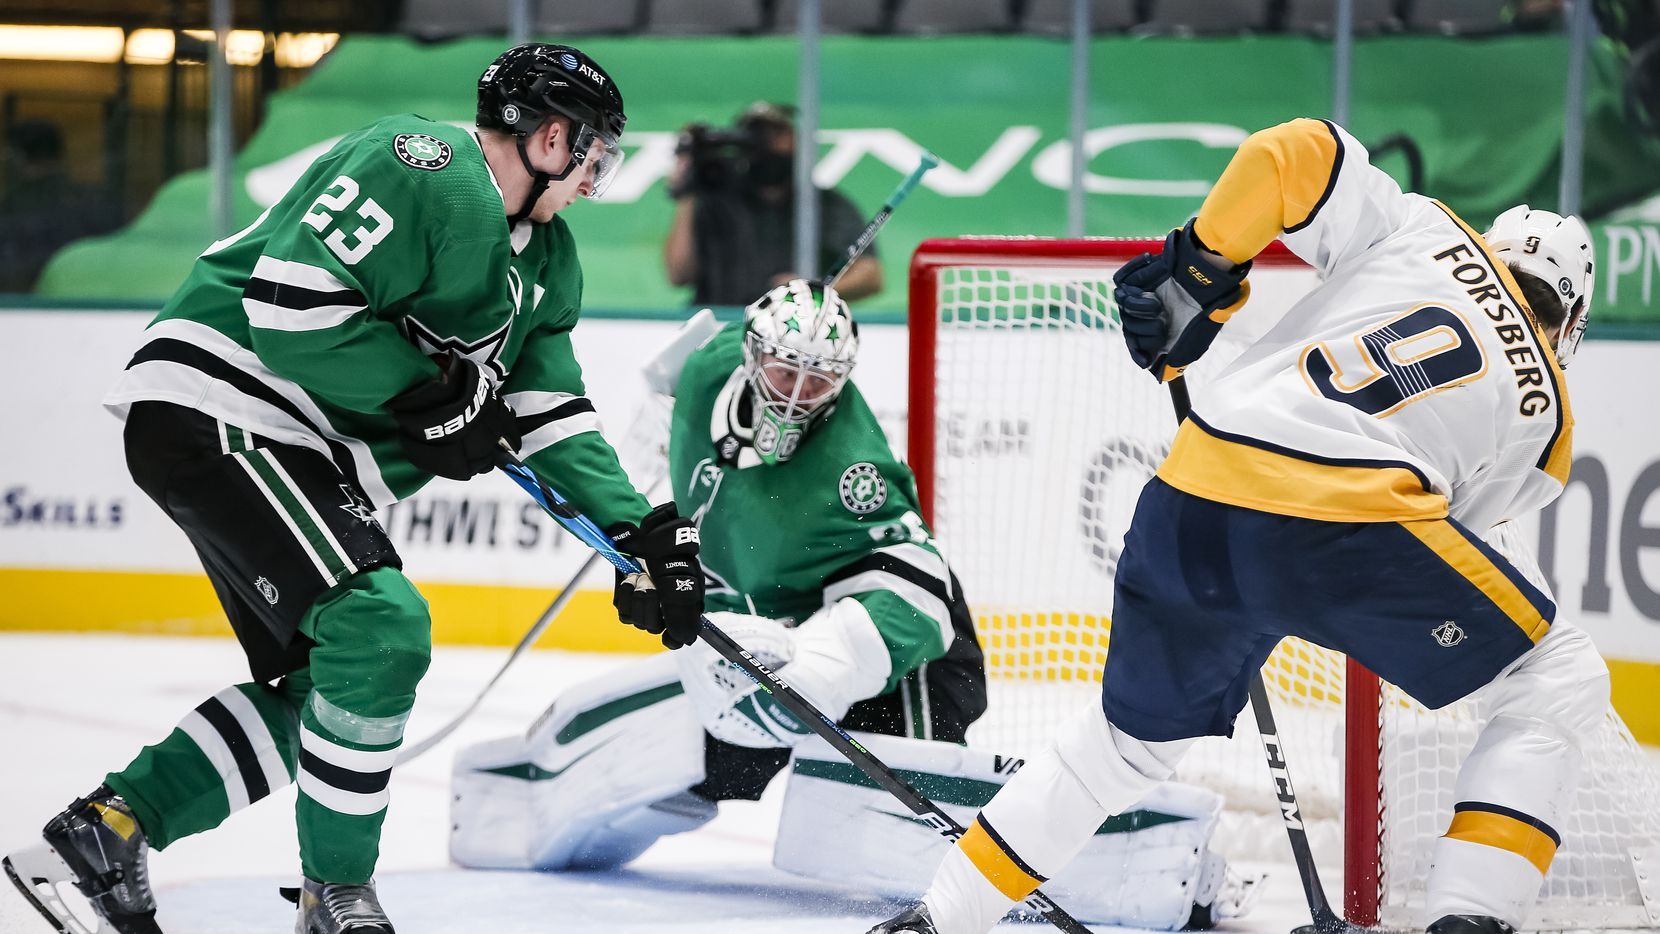 Nashville Predators forward Filip Forsberg (9) shoots the puck past Dallas Stars goaltender Anton Khudobin (35) as defenseman Esa Lindell (23) defends during the second period of an NHL hockey game in Dallas Sunday, March 21, 2021.